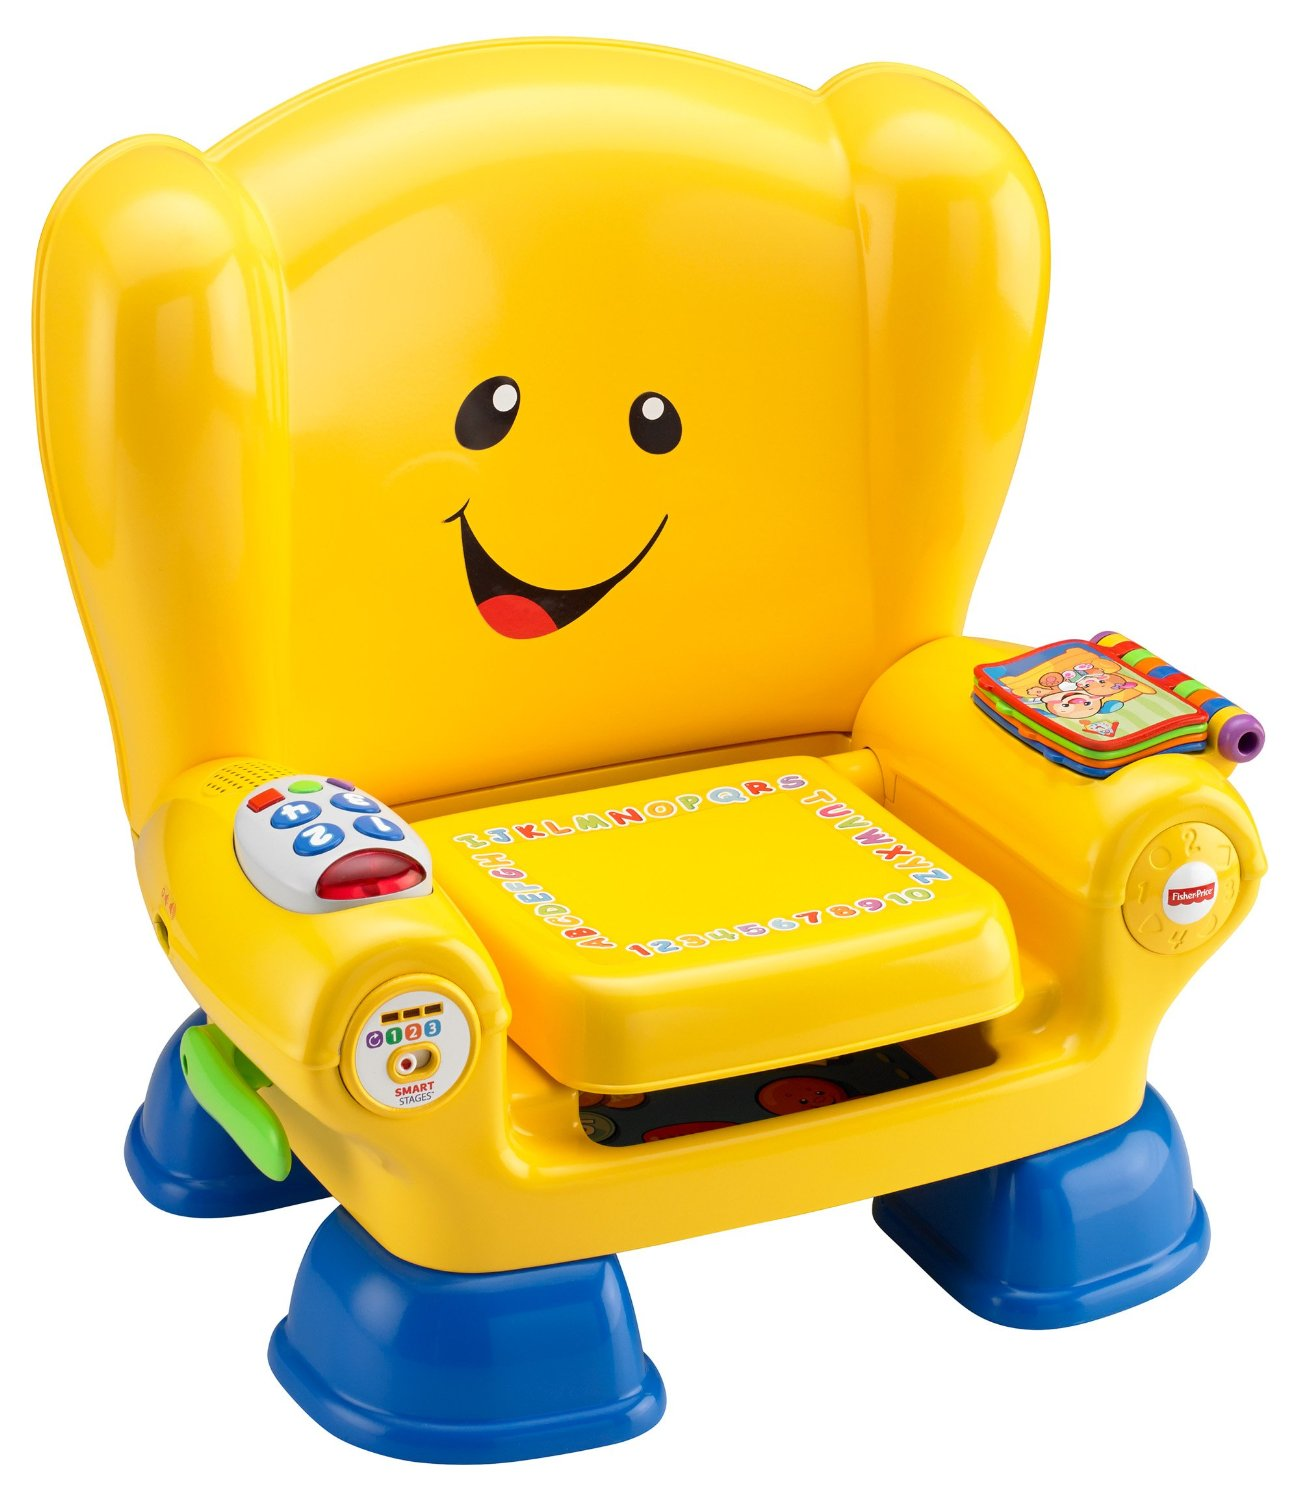 Fisher Price Laugh & Learn Smart Stages Chair Review Kids Toys News